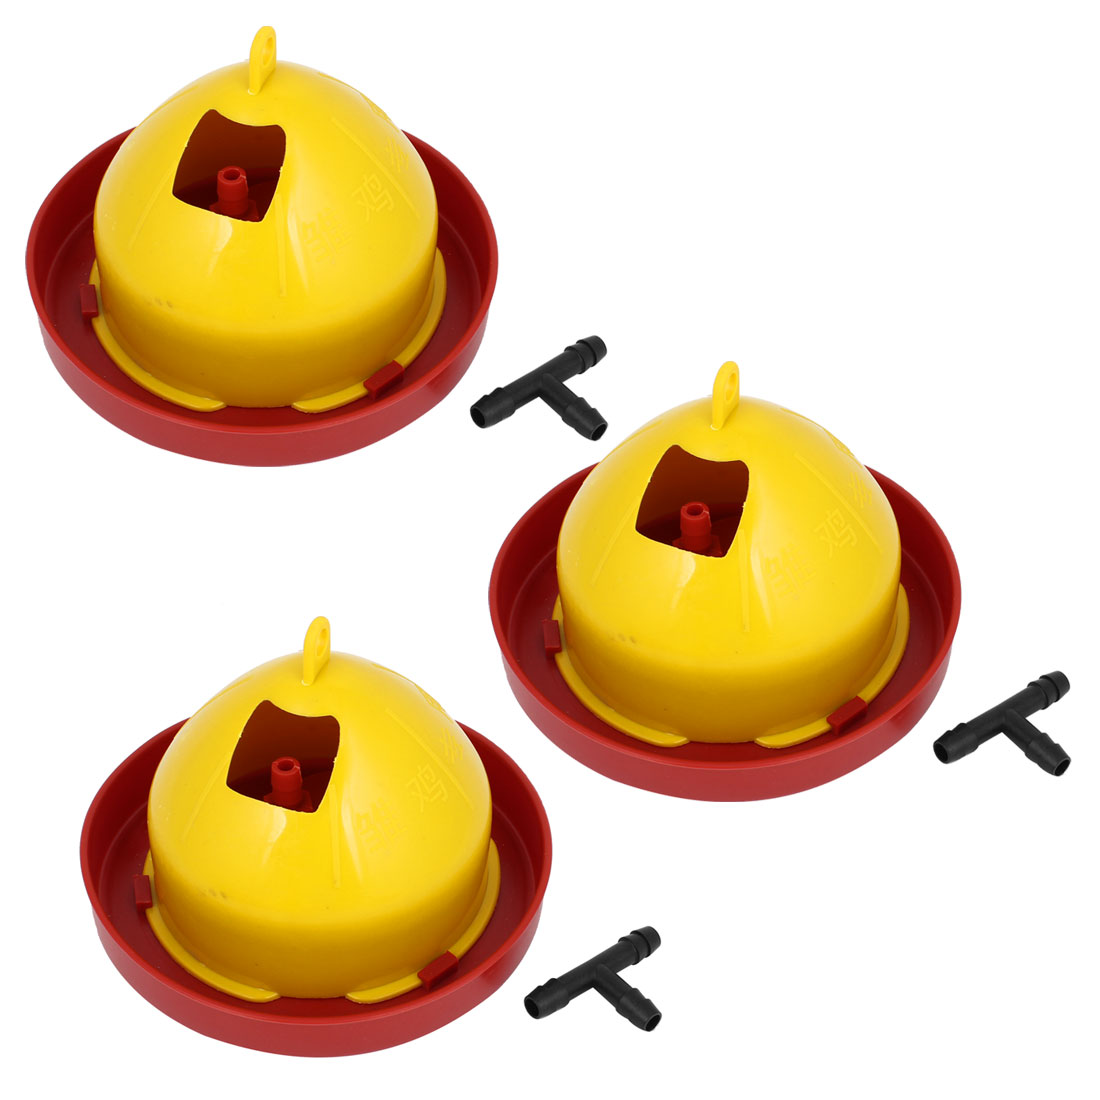 780ml Red Yellow Plastic Automatic Poultry Bird Chick Fount Waterer Feeder Drinker 3pcs